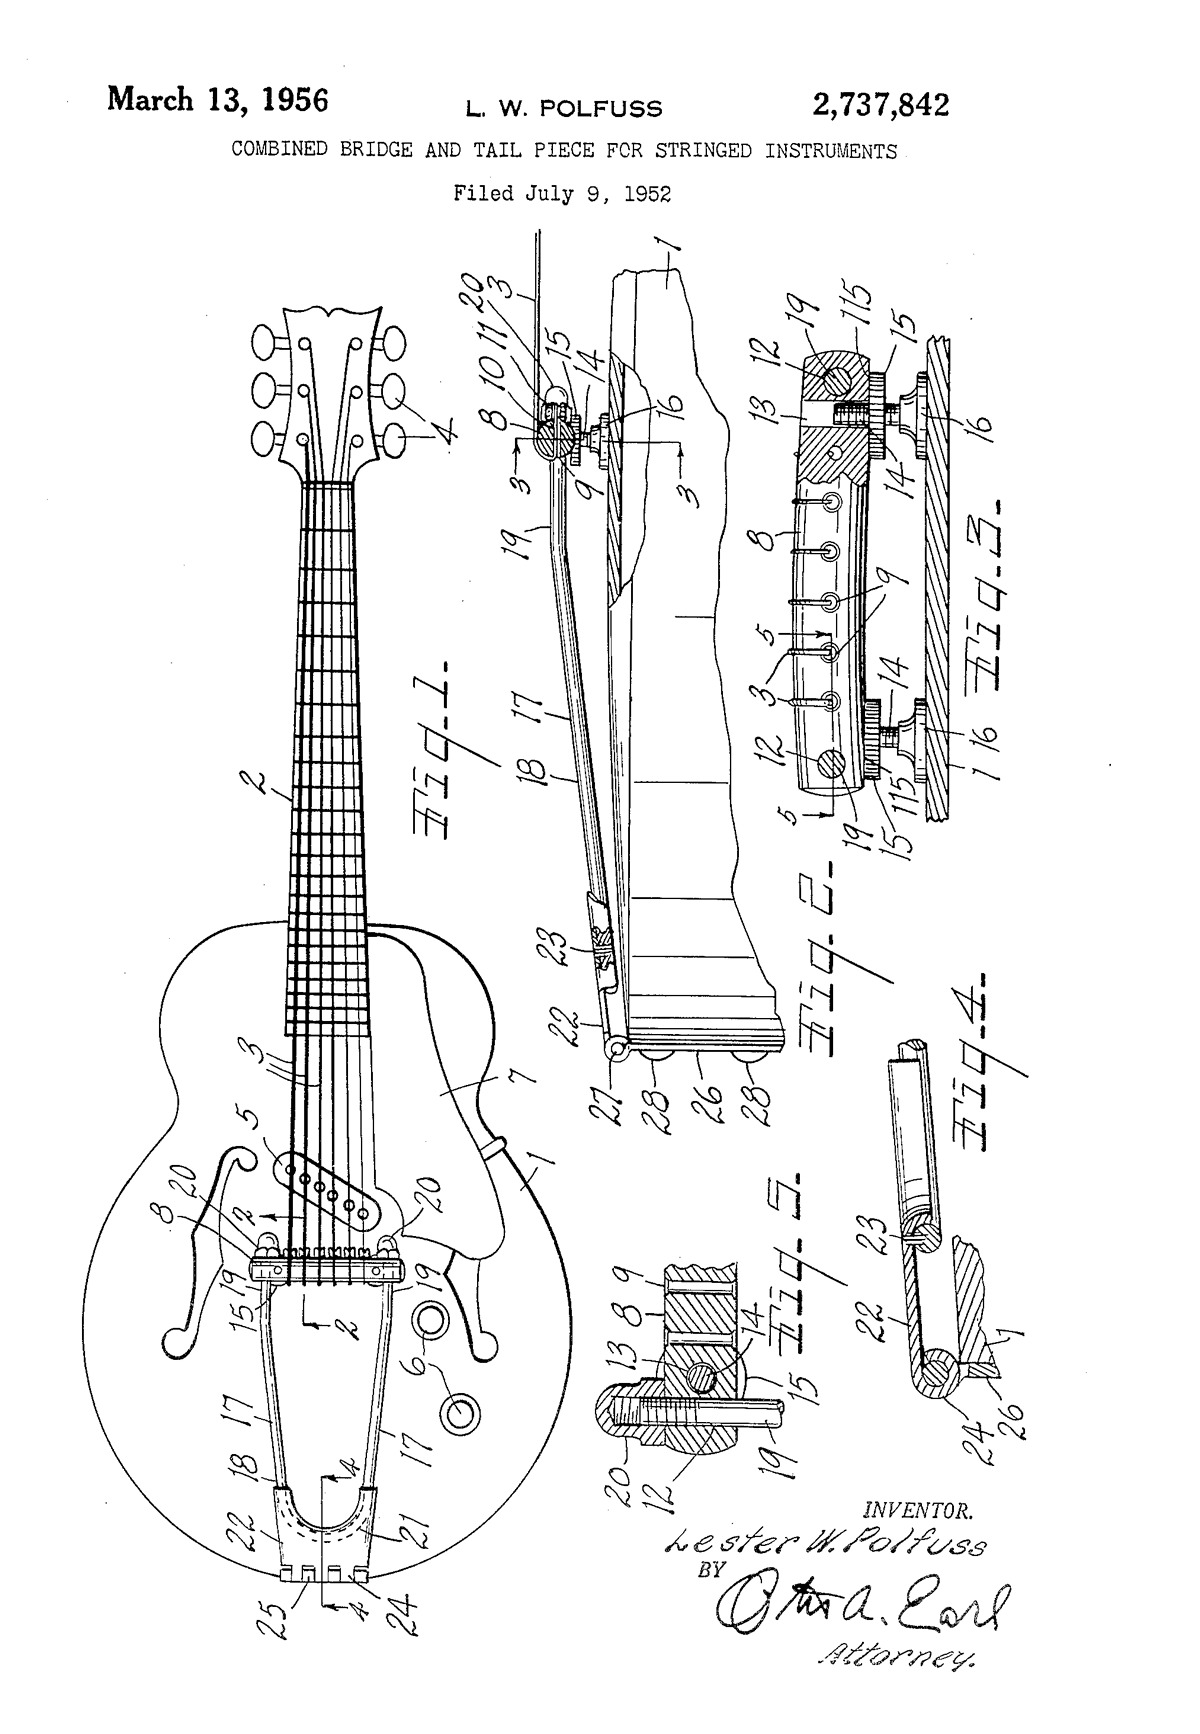 Combined bridge and tail piece for stringed instruments